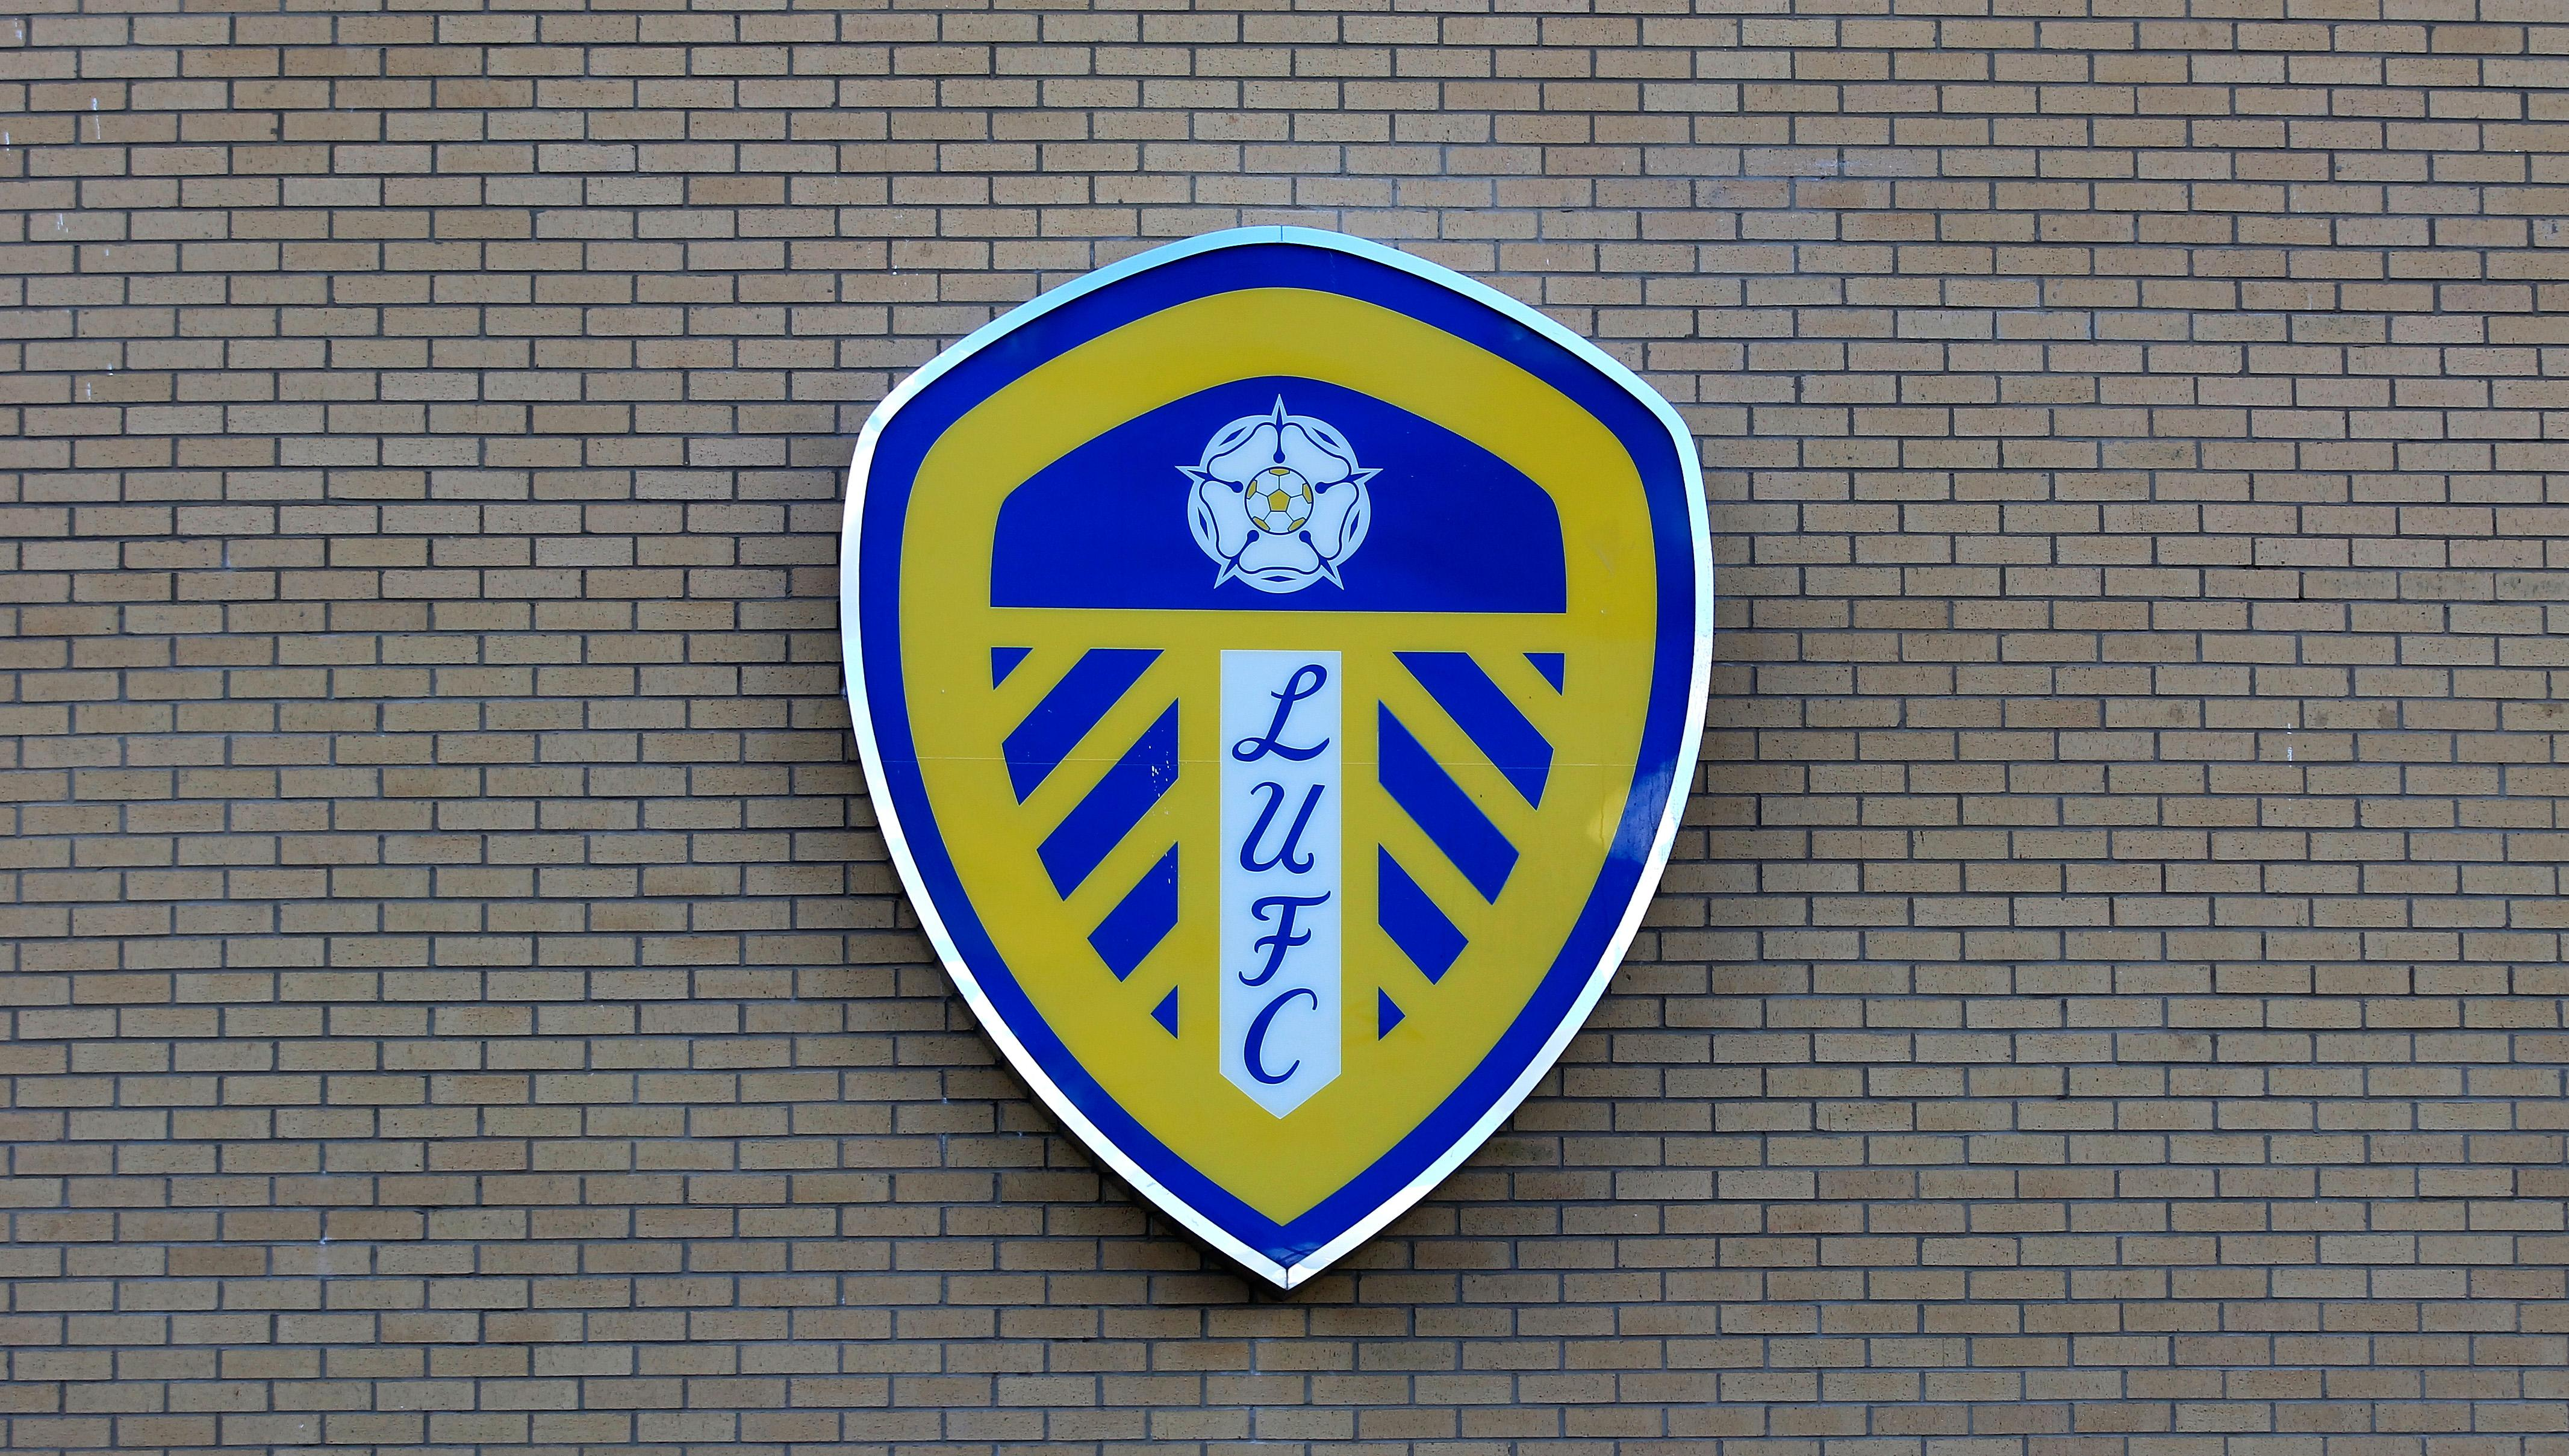 Oh yeah, we're also in for some sort of new badge